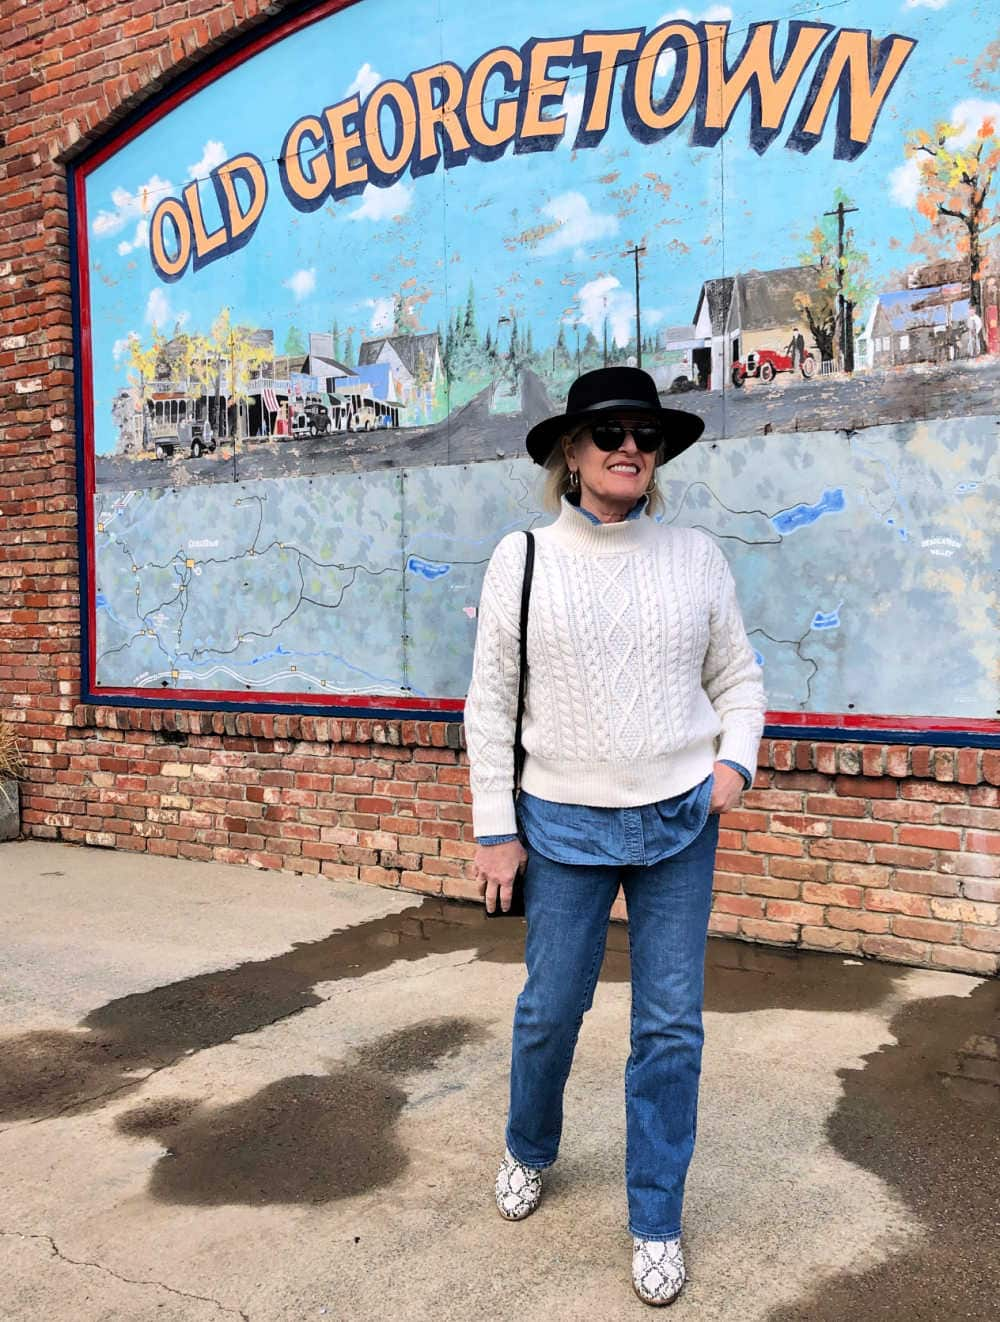 over 50 fashion blogger jennifer connolly of a well styled life wear black fedora, ivory cable sweater and boot cut jeans in Old Georgetown